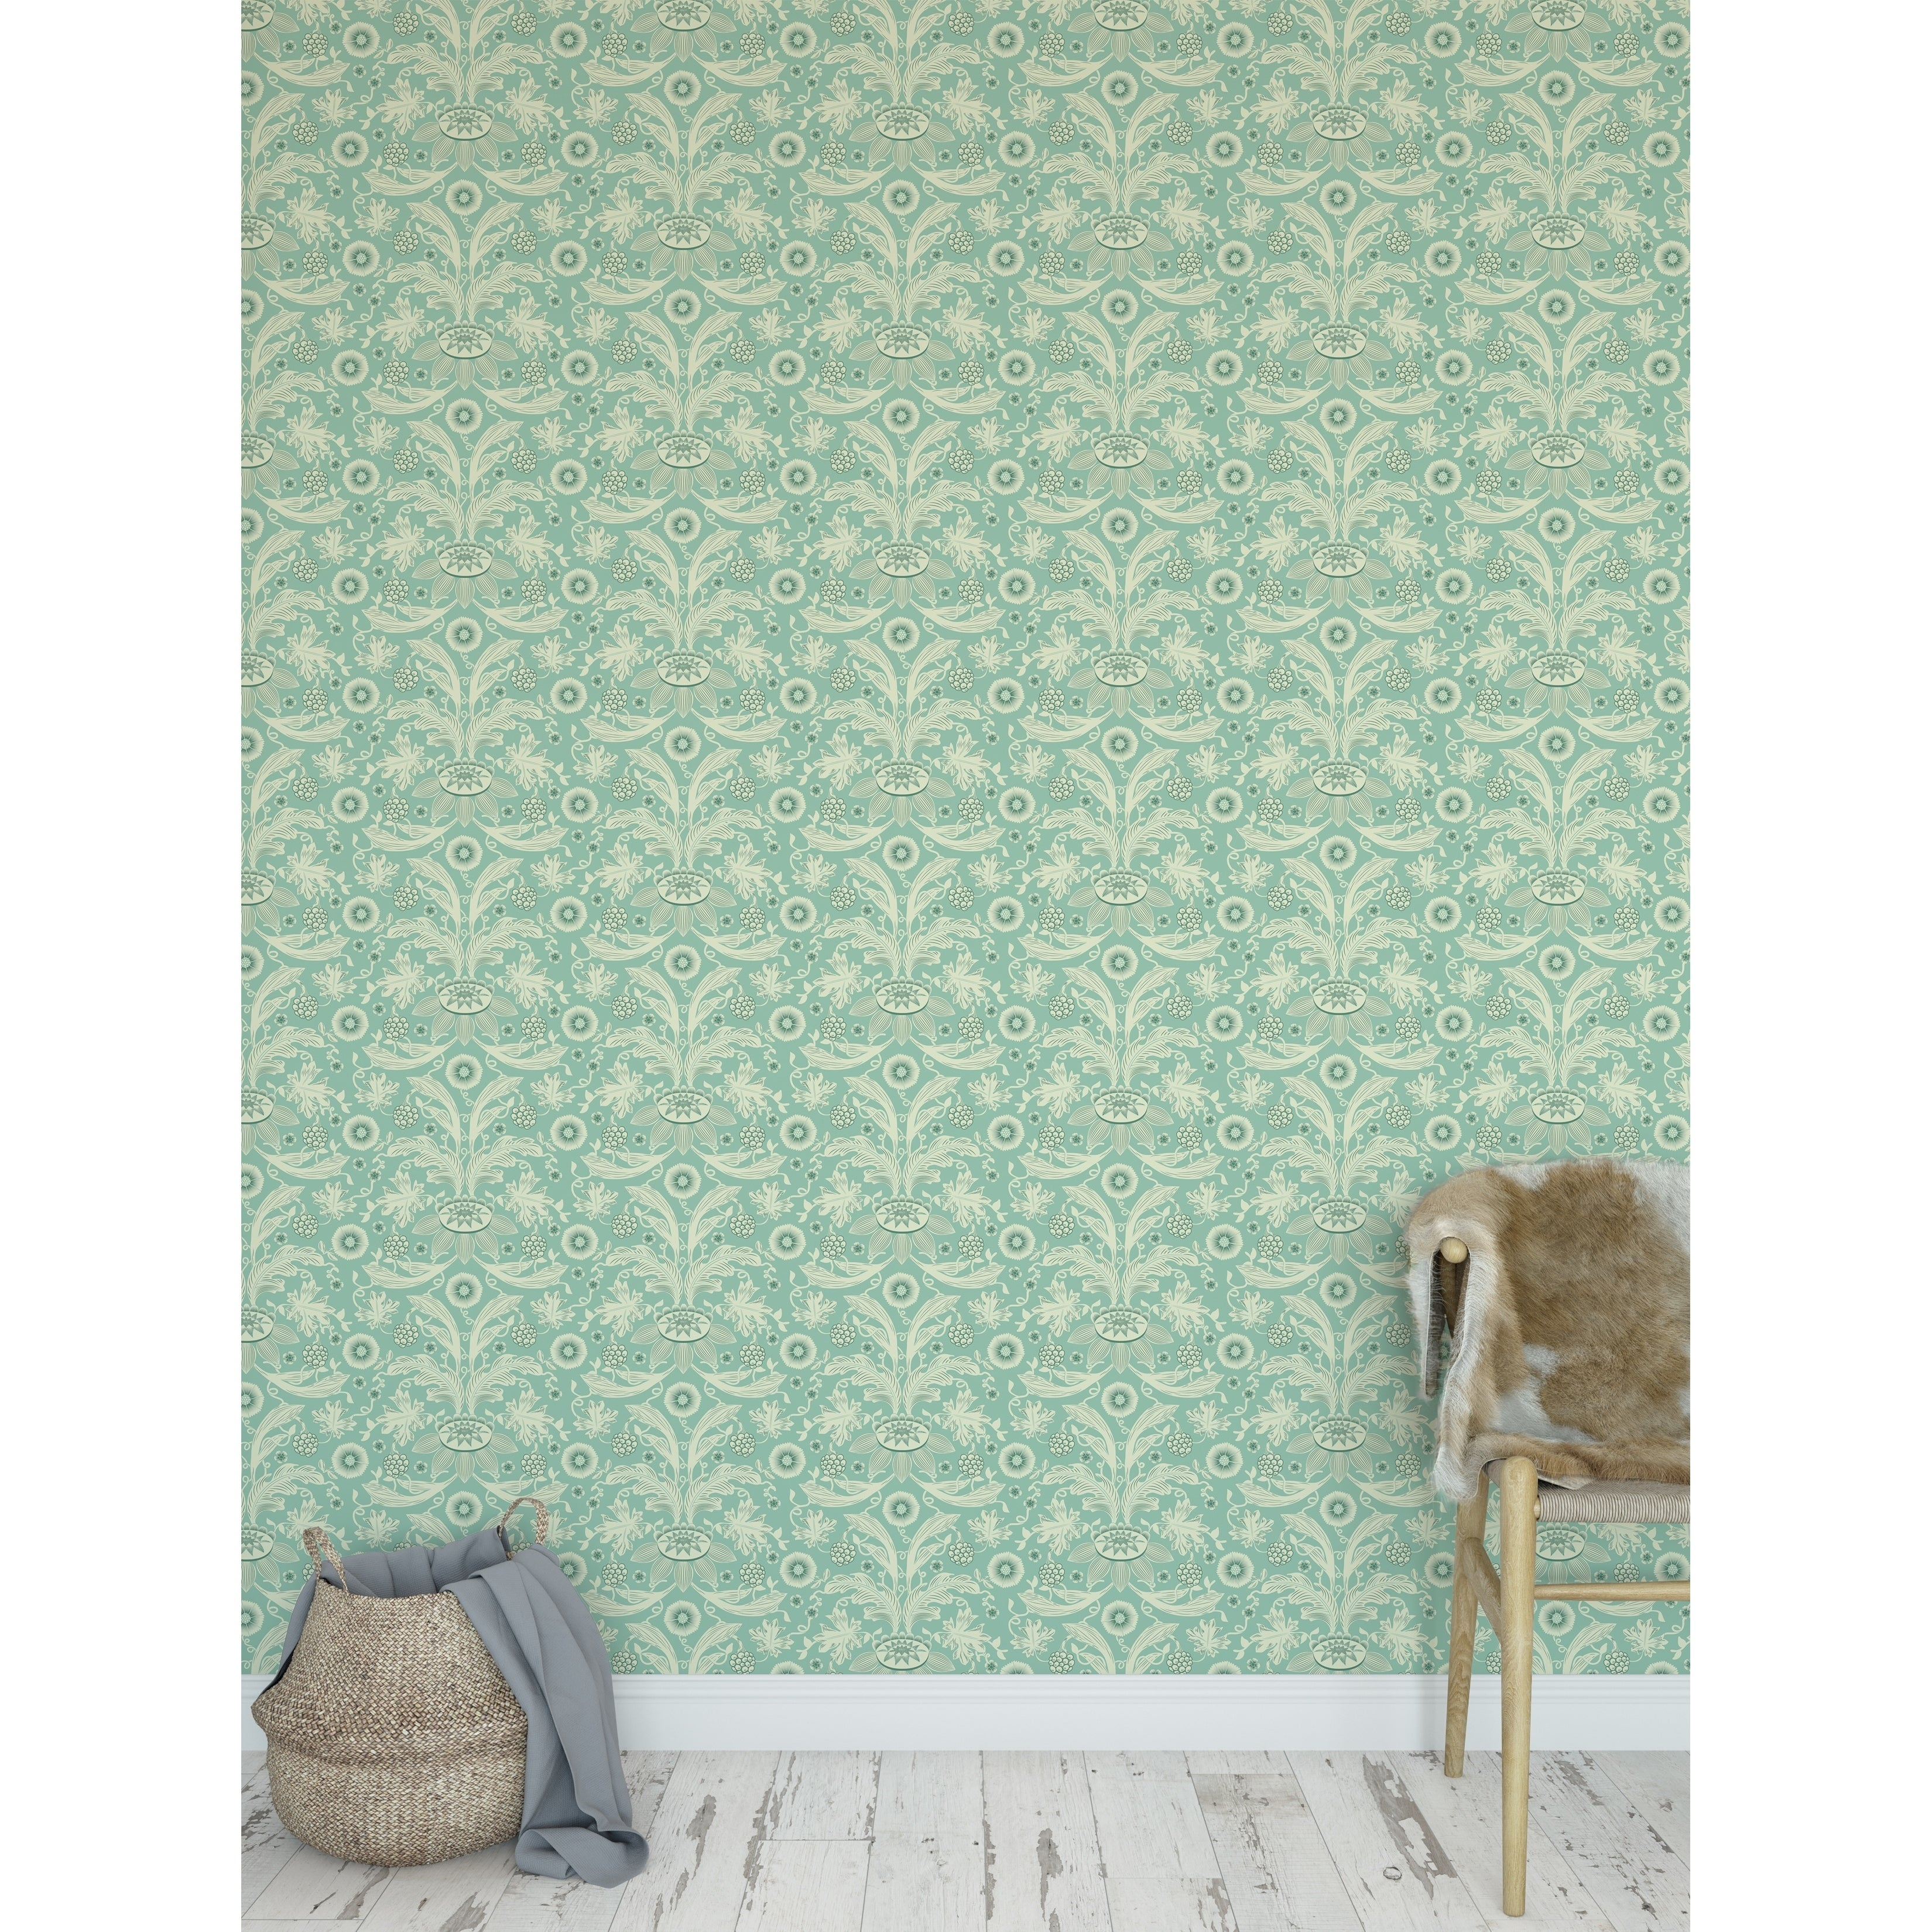 Shop Floral Damask Mint Peel And Stick Wallpaper By Kavka Designs Overstock 30637416